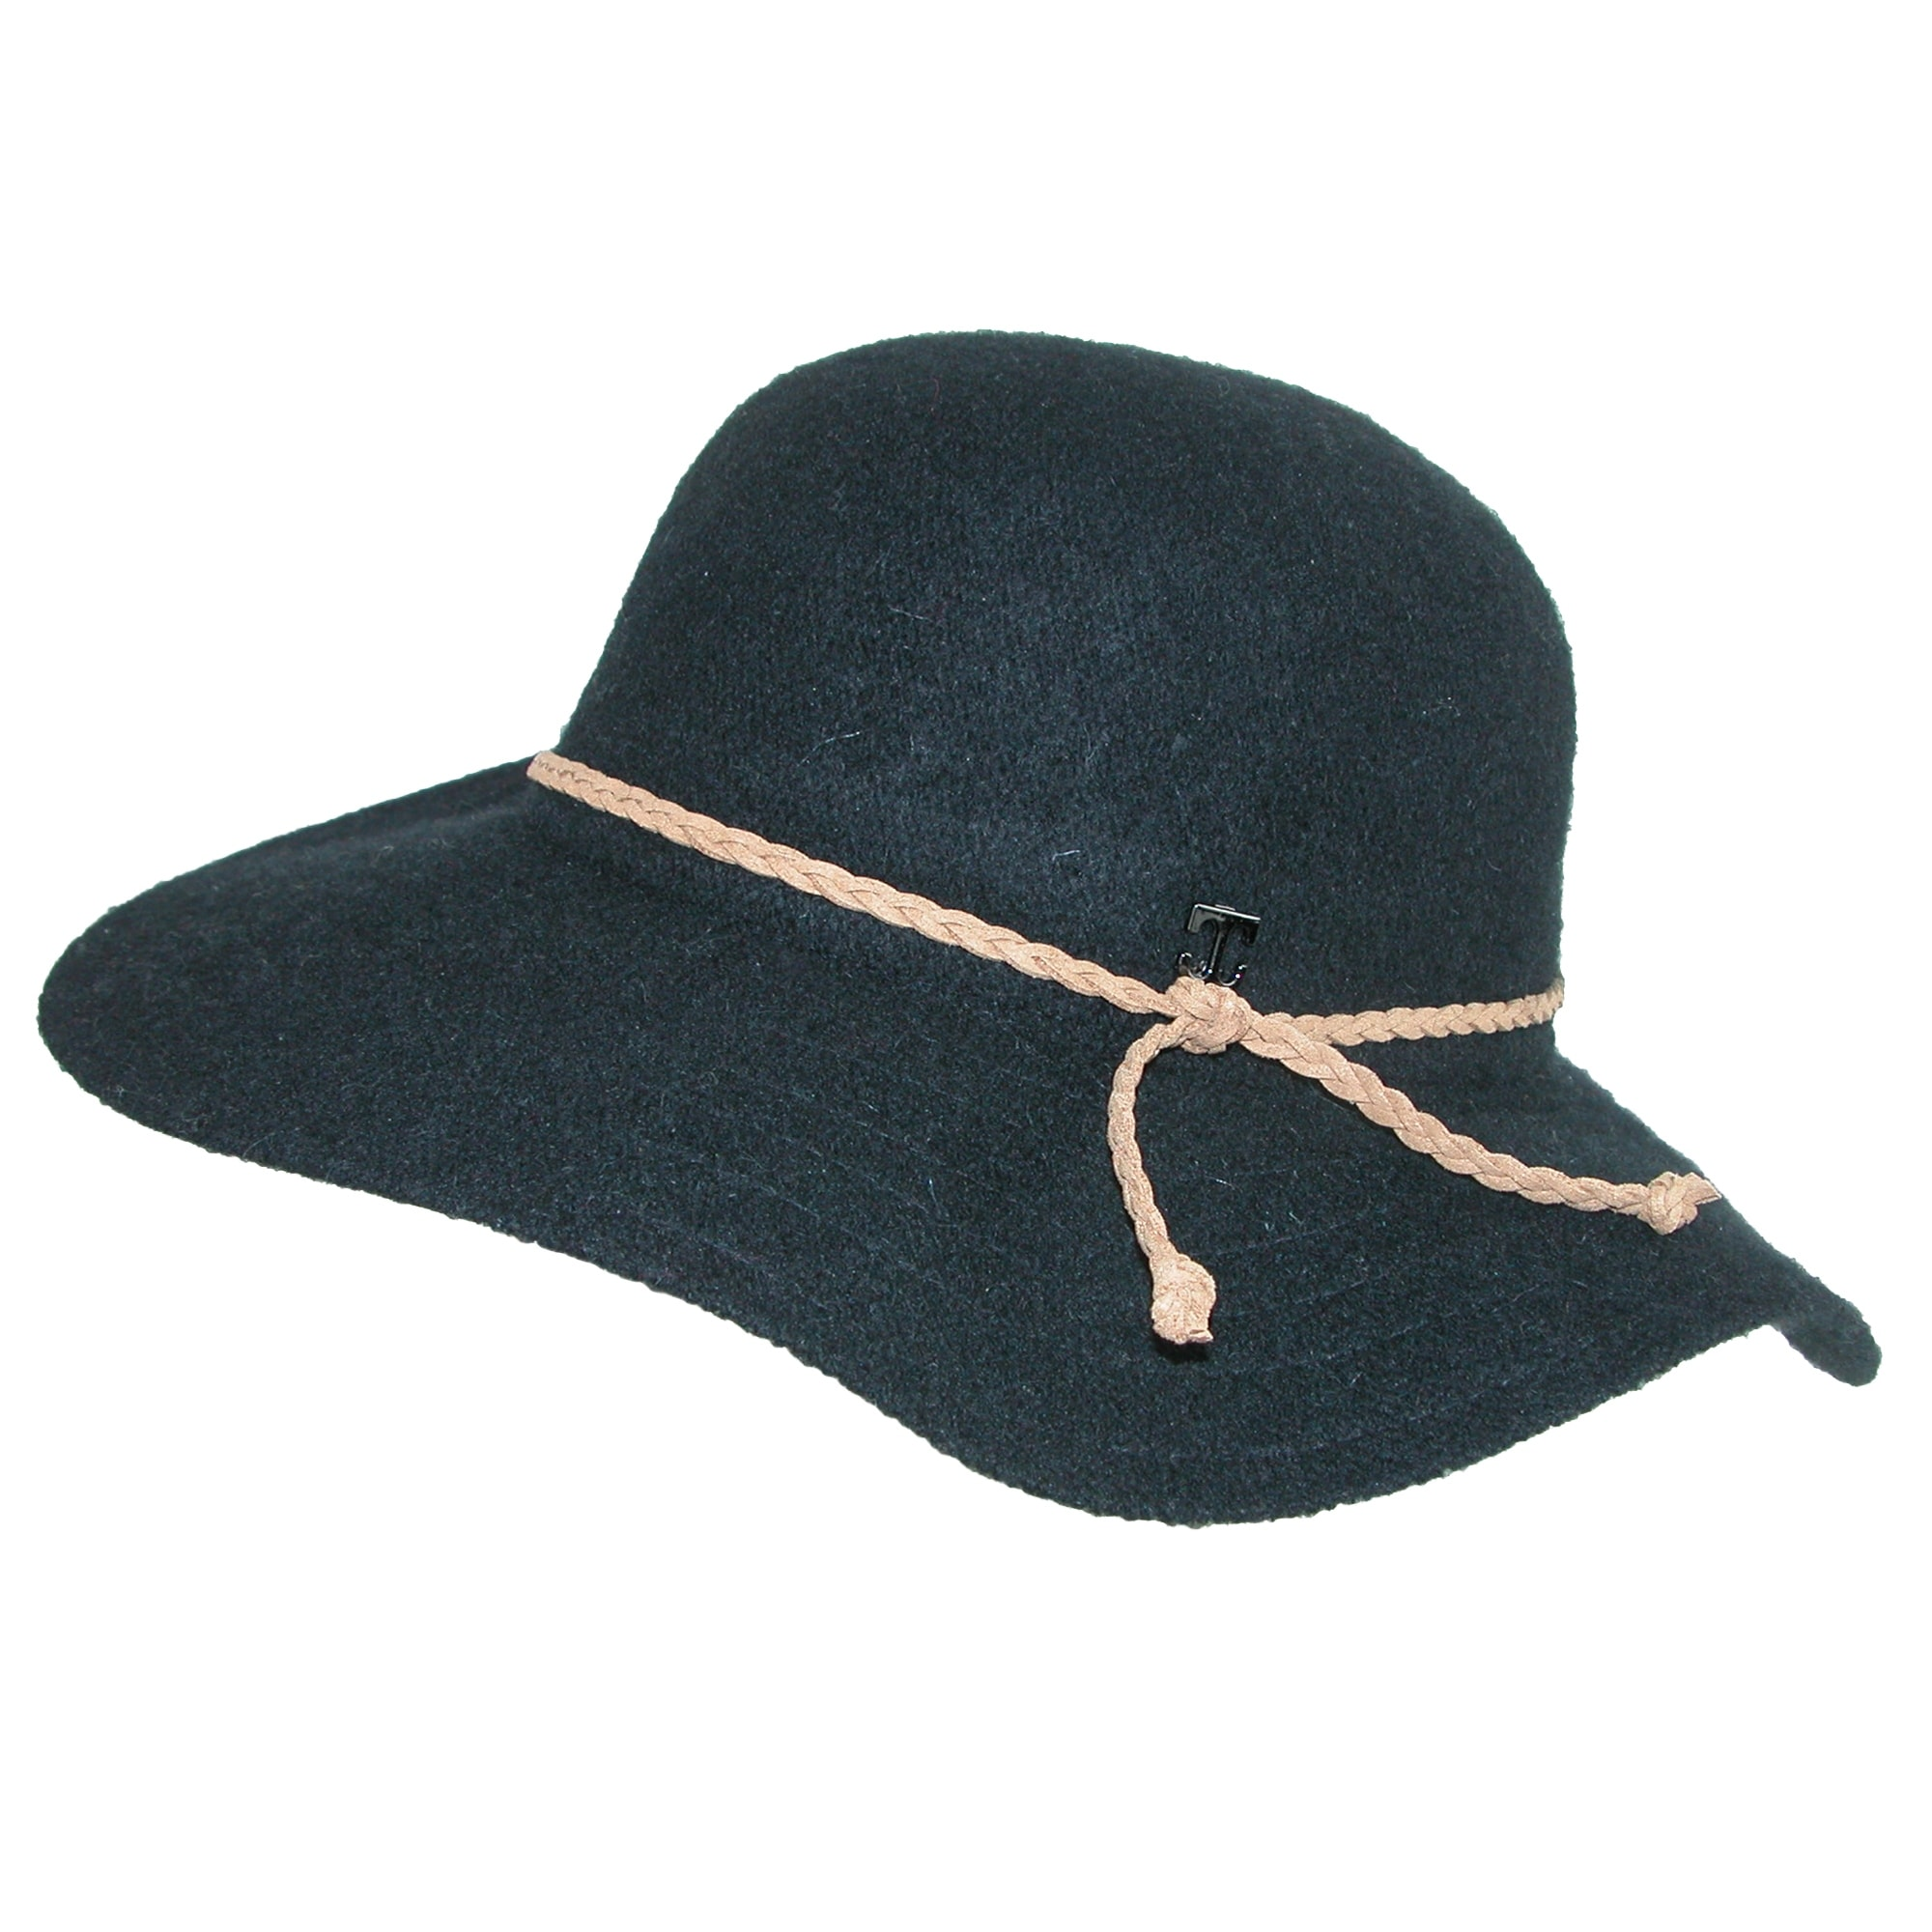 713bd5891c9 Shop Callanan Women s Floppy Hat with Braided Faux Leather Hatband - Ships  To Canada - Overstock.ca - 17762440